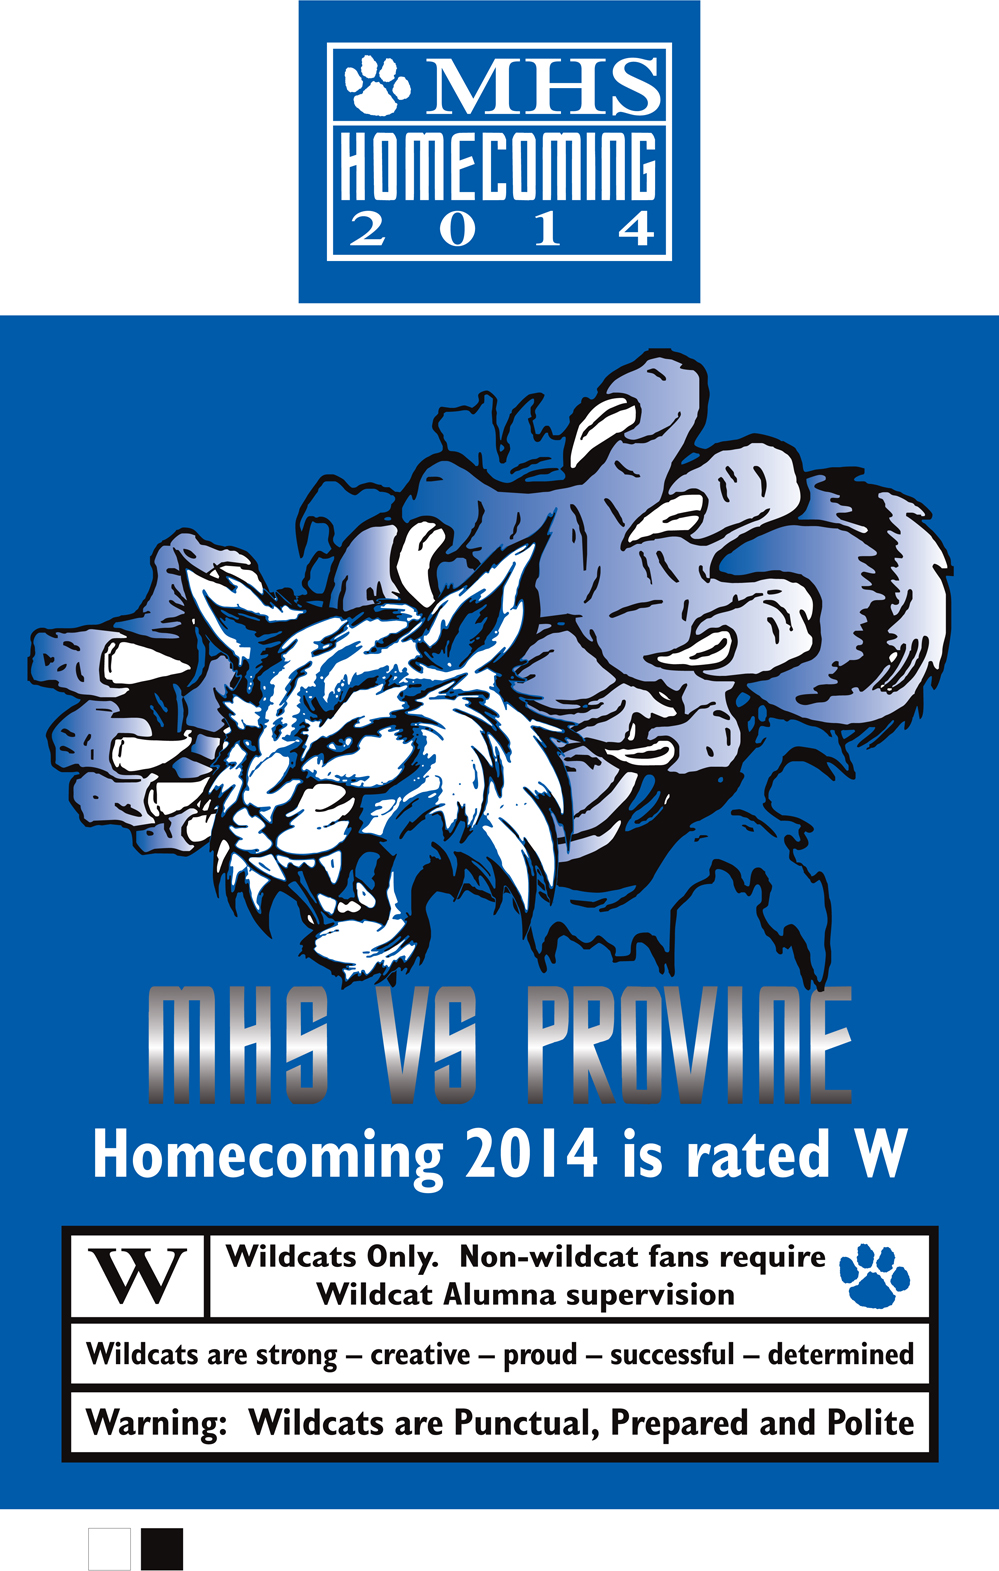 Meridian High : MHS Homecoming T-Shirts On Sale Now on homecoming quotes for shirts, homecoming photography 2014, homecoming class of 2014 t-shirts, homecoming shirt ideas seniors, homecoming signs 2014, homecoming jewelry 2014, homecoming basketball shirt designs,